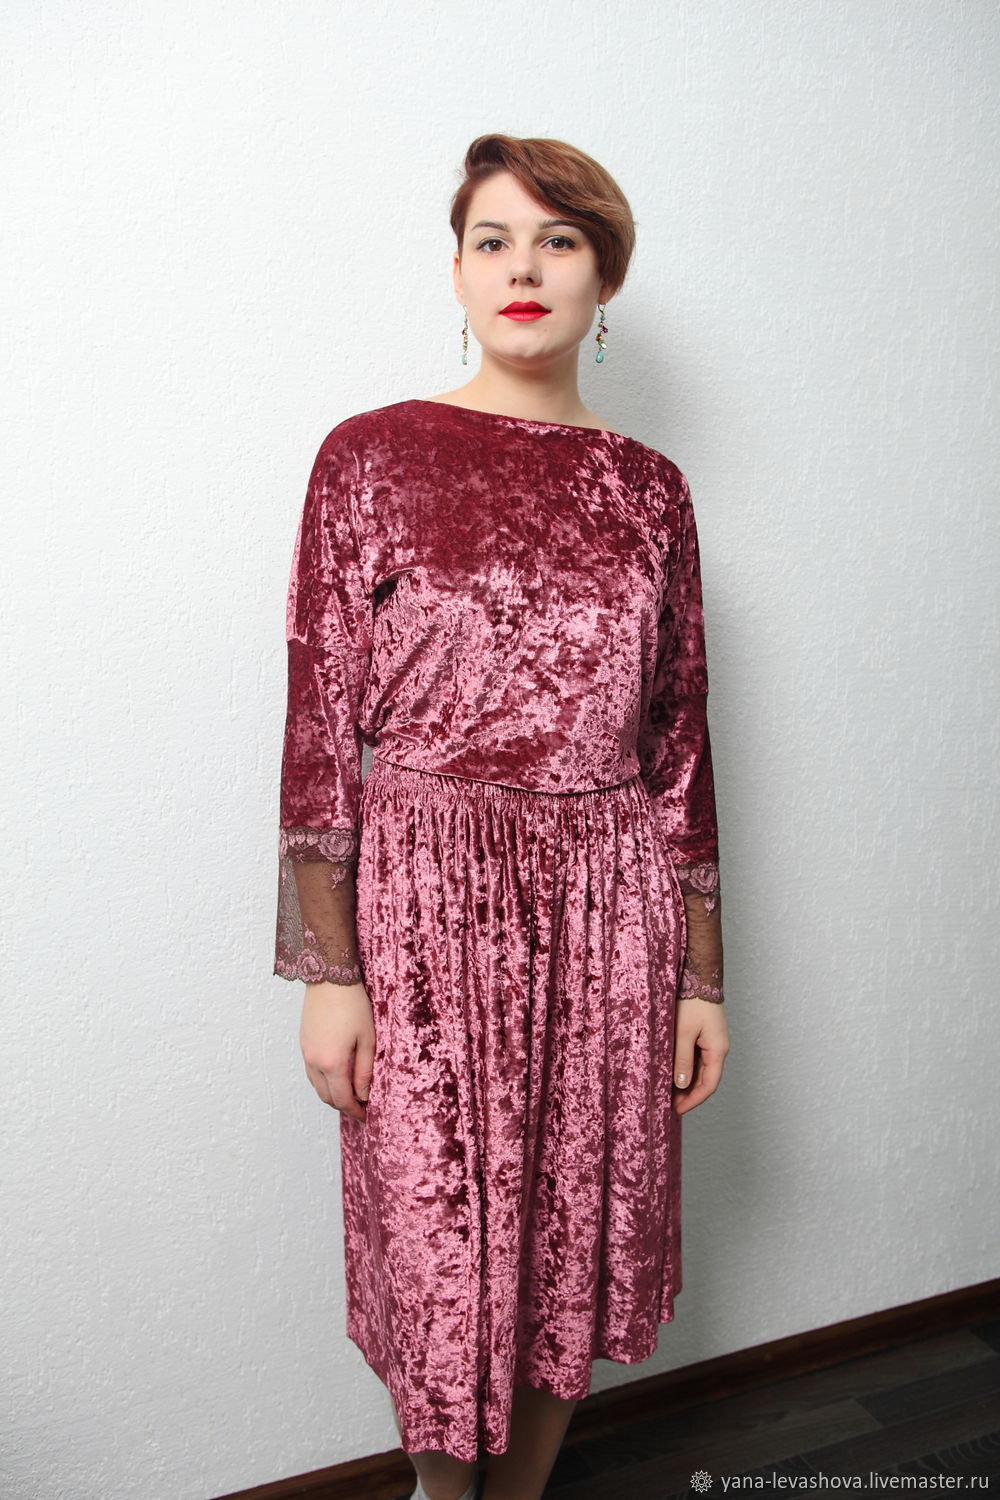 Skirt and blouse velvet Burgundy powder with lace, Suits, Moscow,  Фото №1